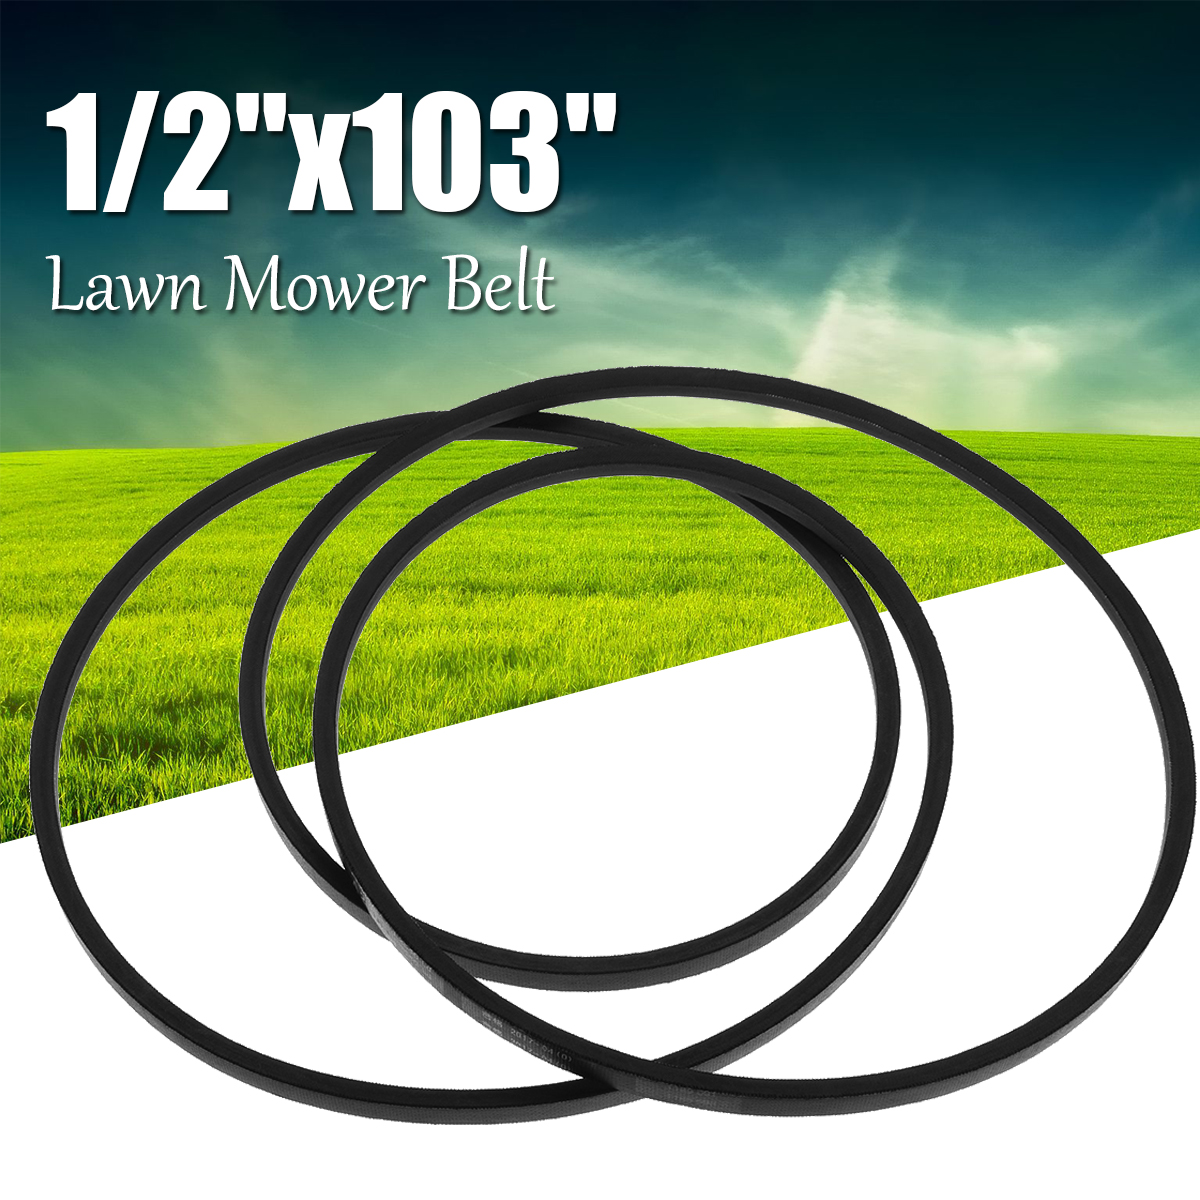 13mm For A101 Industrial Lawn Mower V Belt Rubber 1/2''x103'' Mower Deck Belt Replacement for Industrial Machinery Accessory